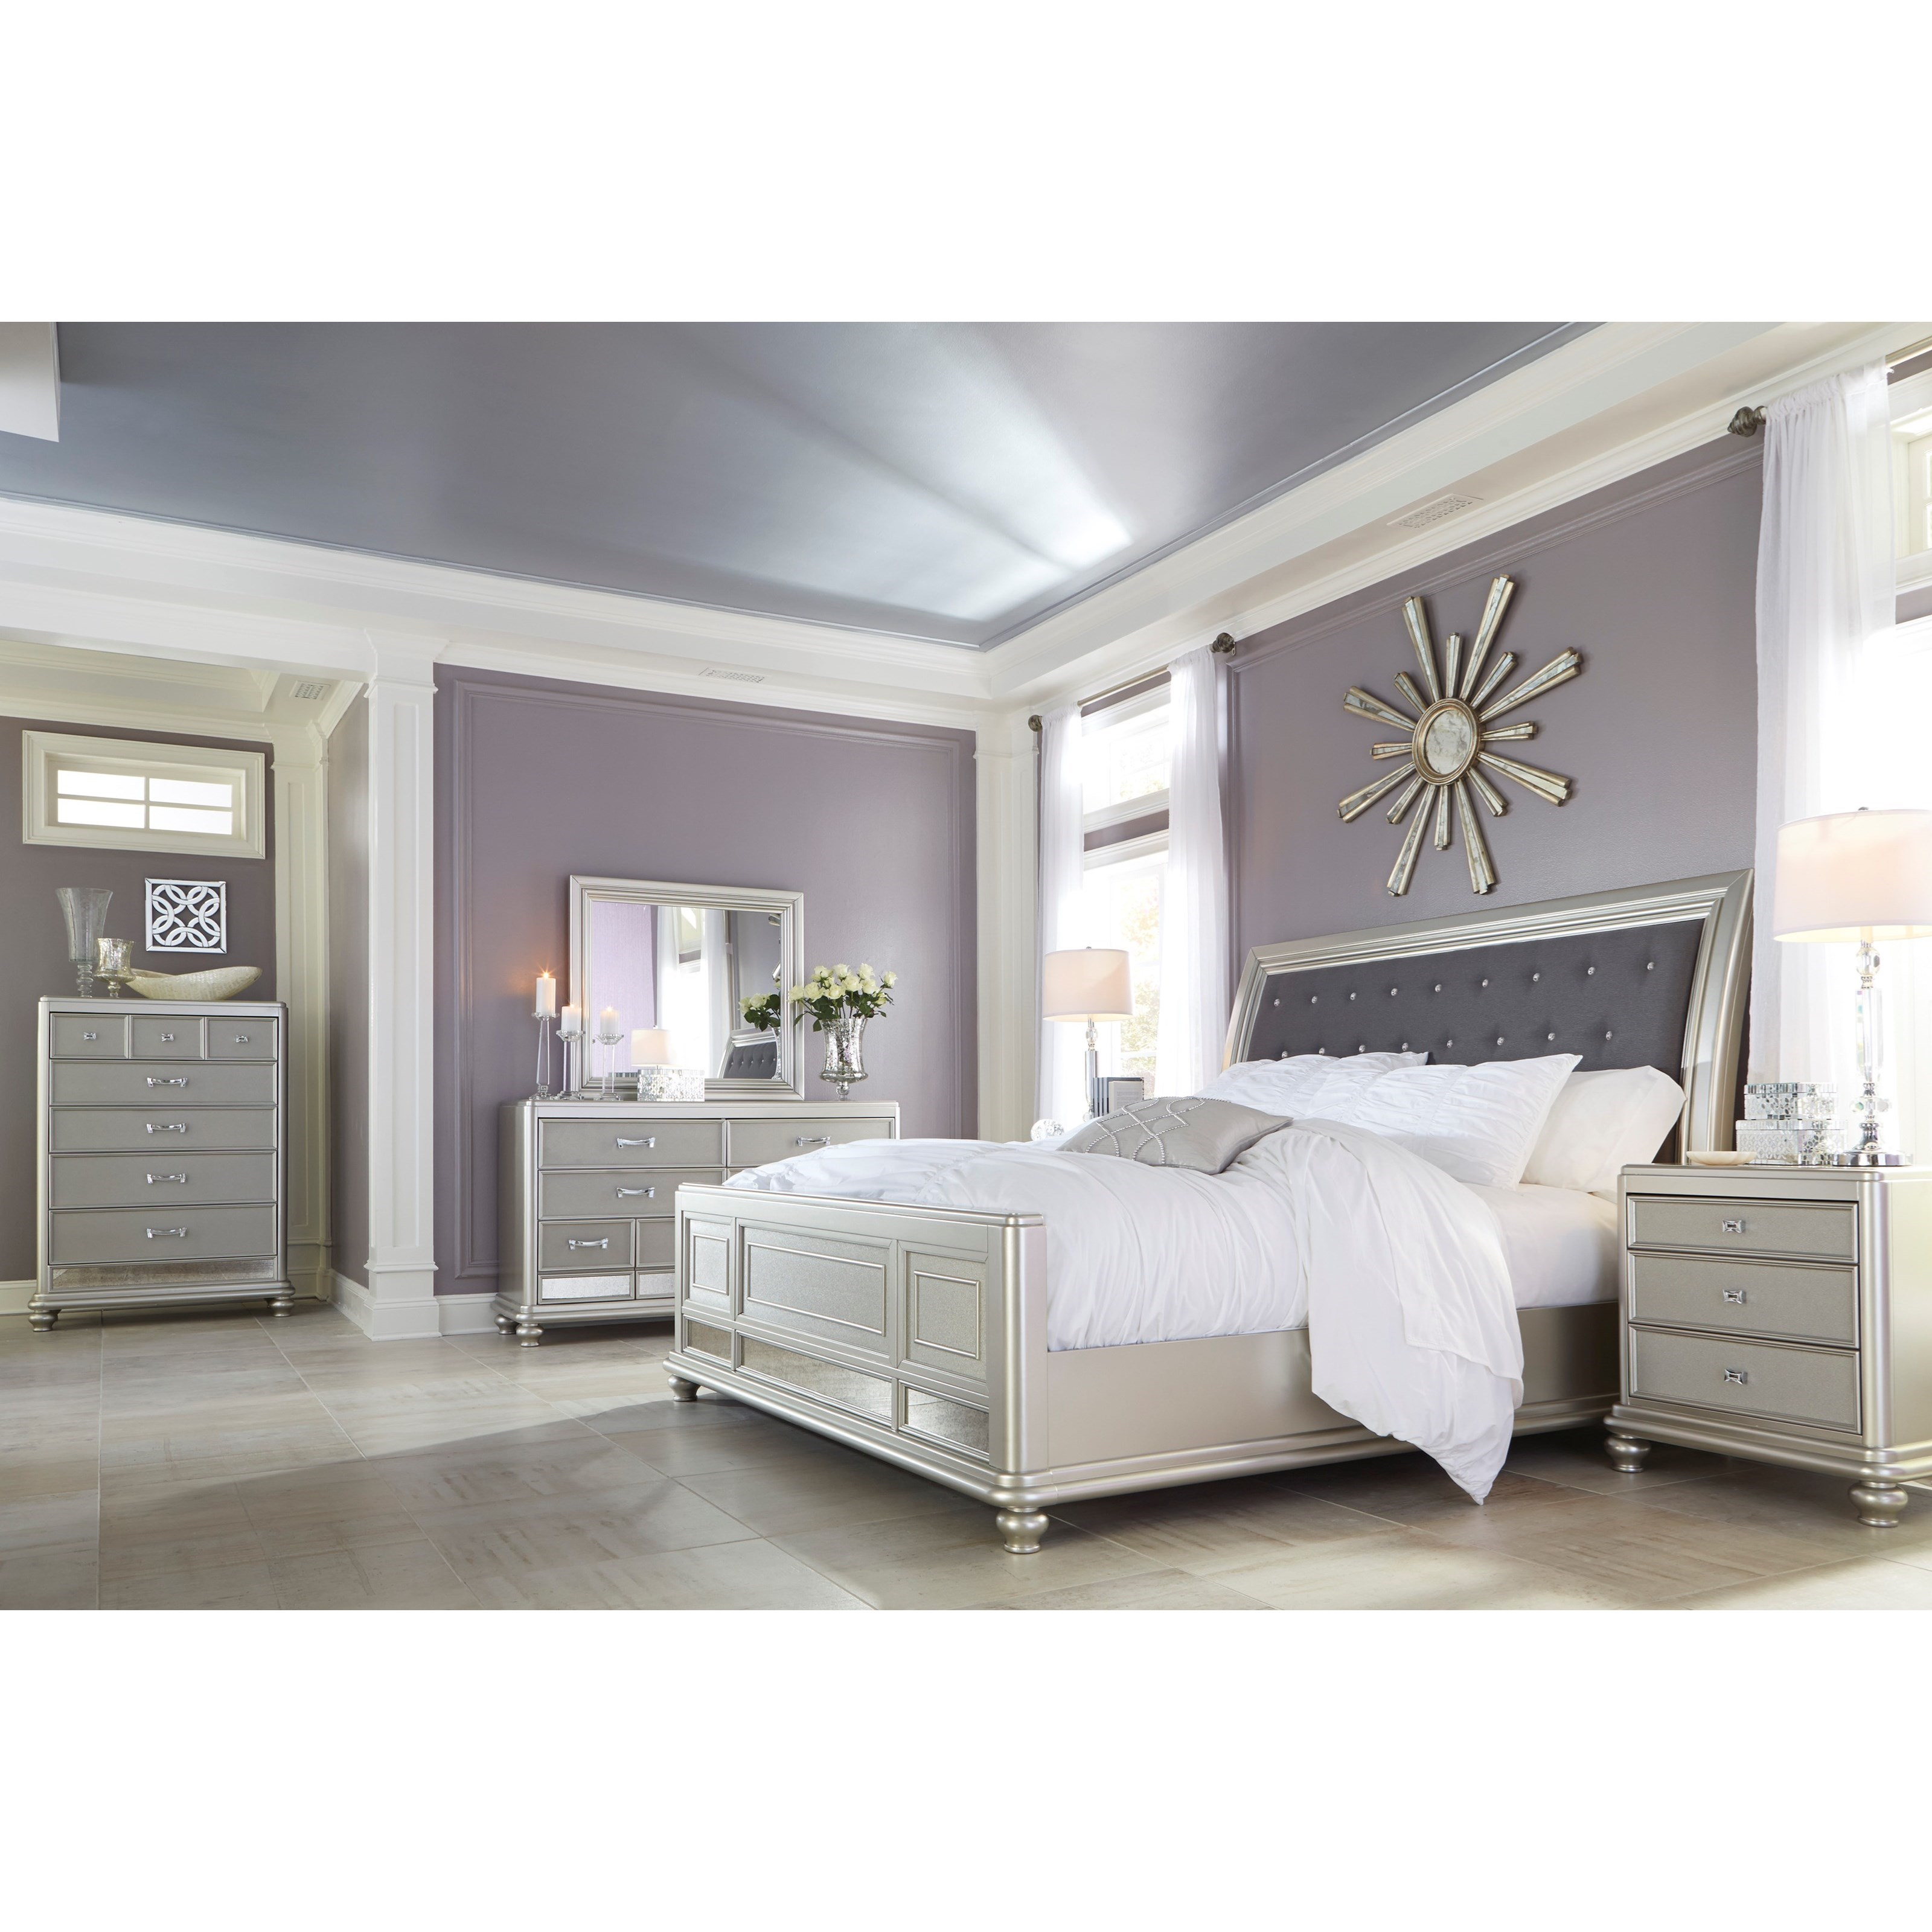 Ashley Furniture Signature: Signature Design By Ashley Coralayne Queen Bedroom Group